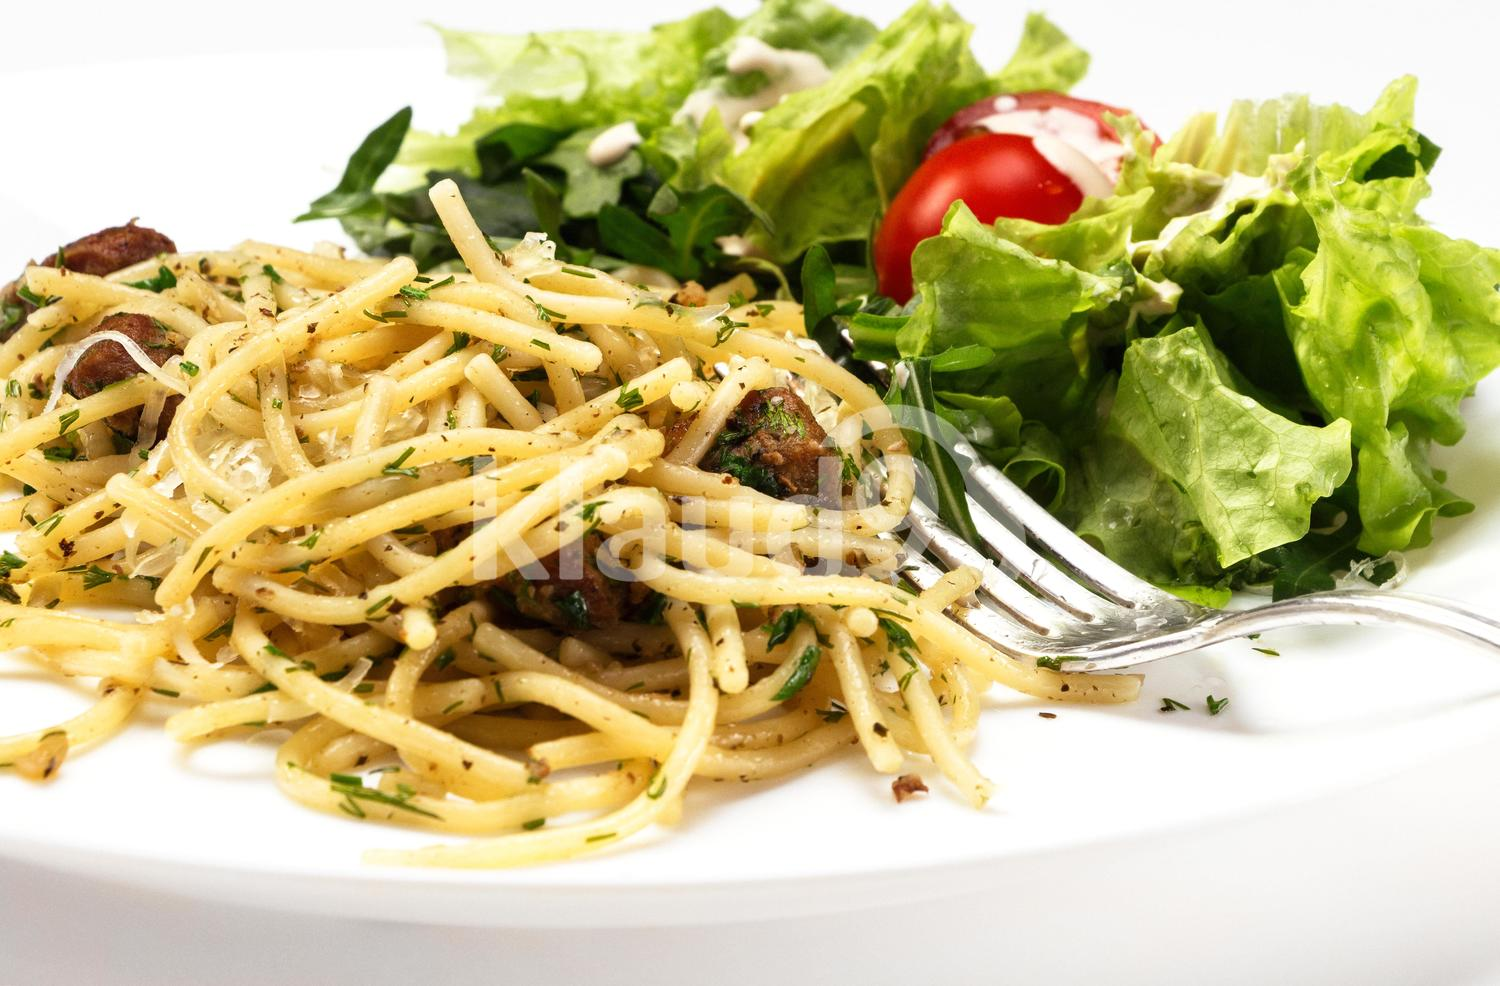 Spaghetti on a white plate with slices of meat and vegetable salad